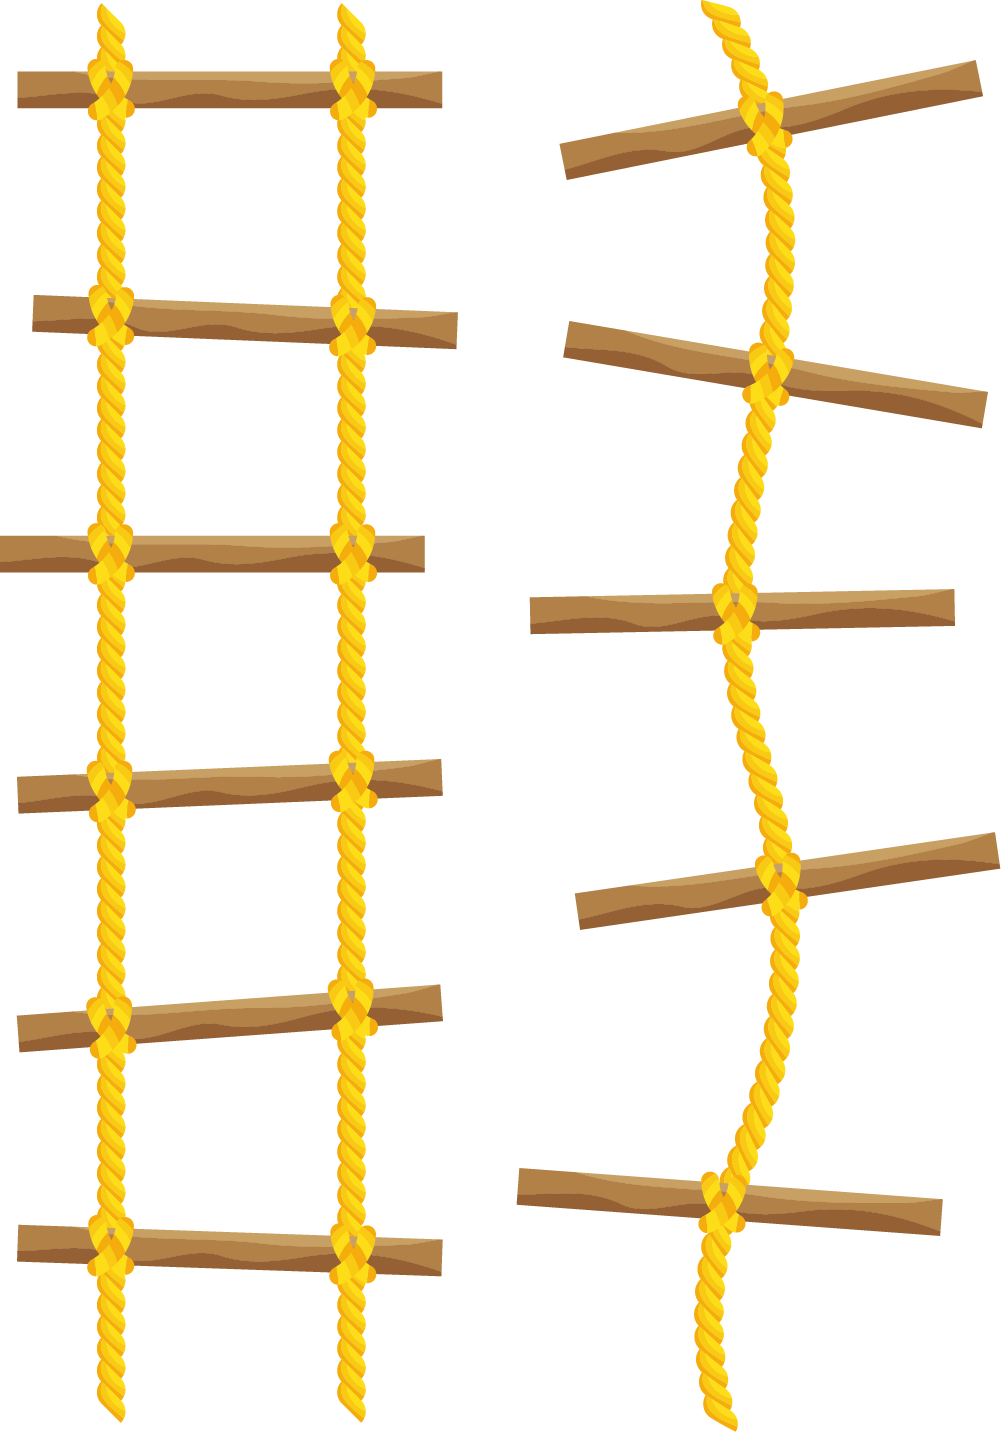 Staircase vector rope ladder. Yellow line light straight